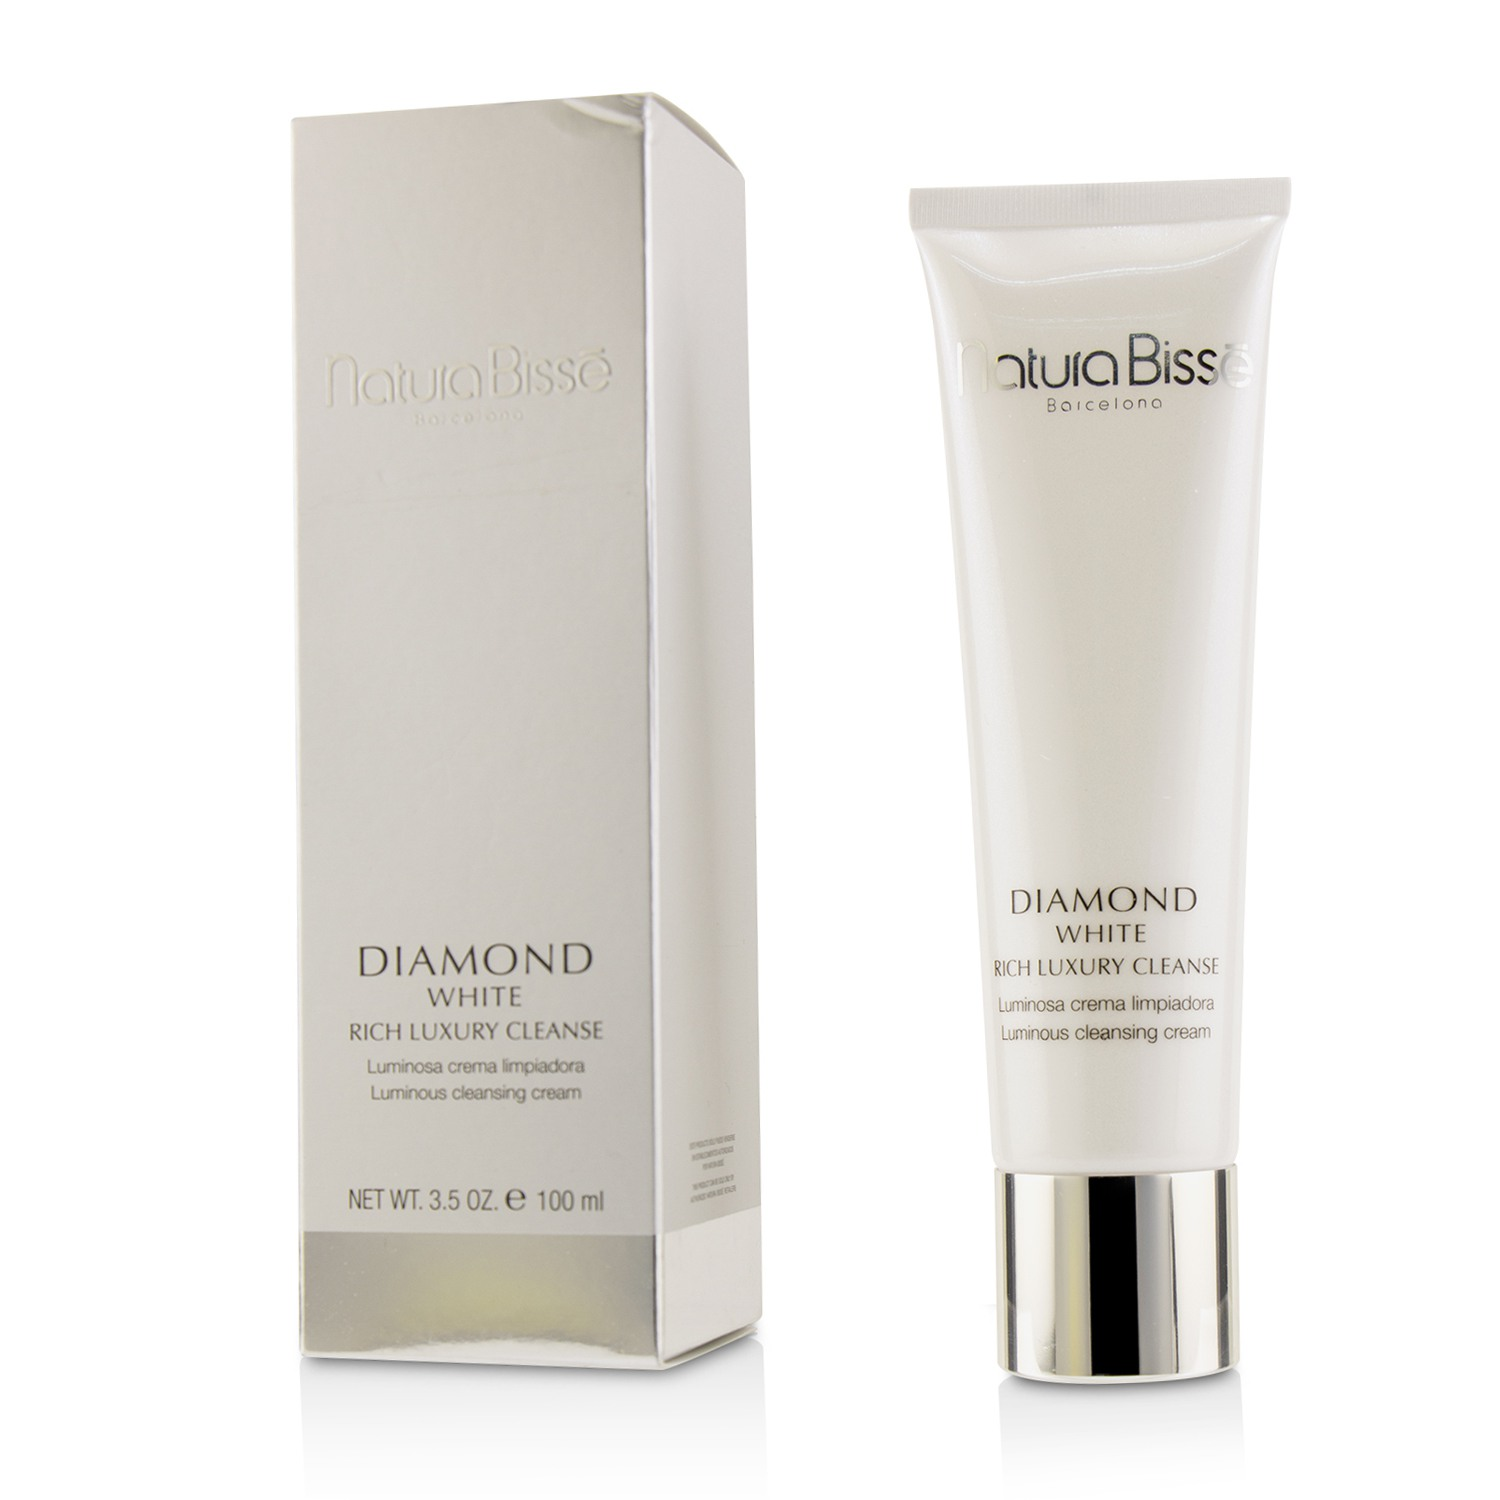 Diamond White Rich Luxury Cleanse Natura Bisse Image